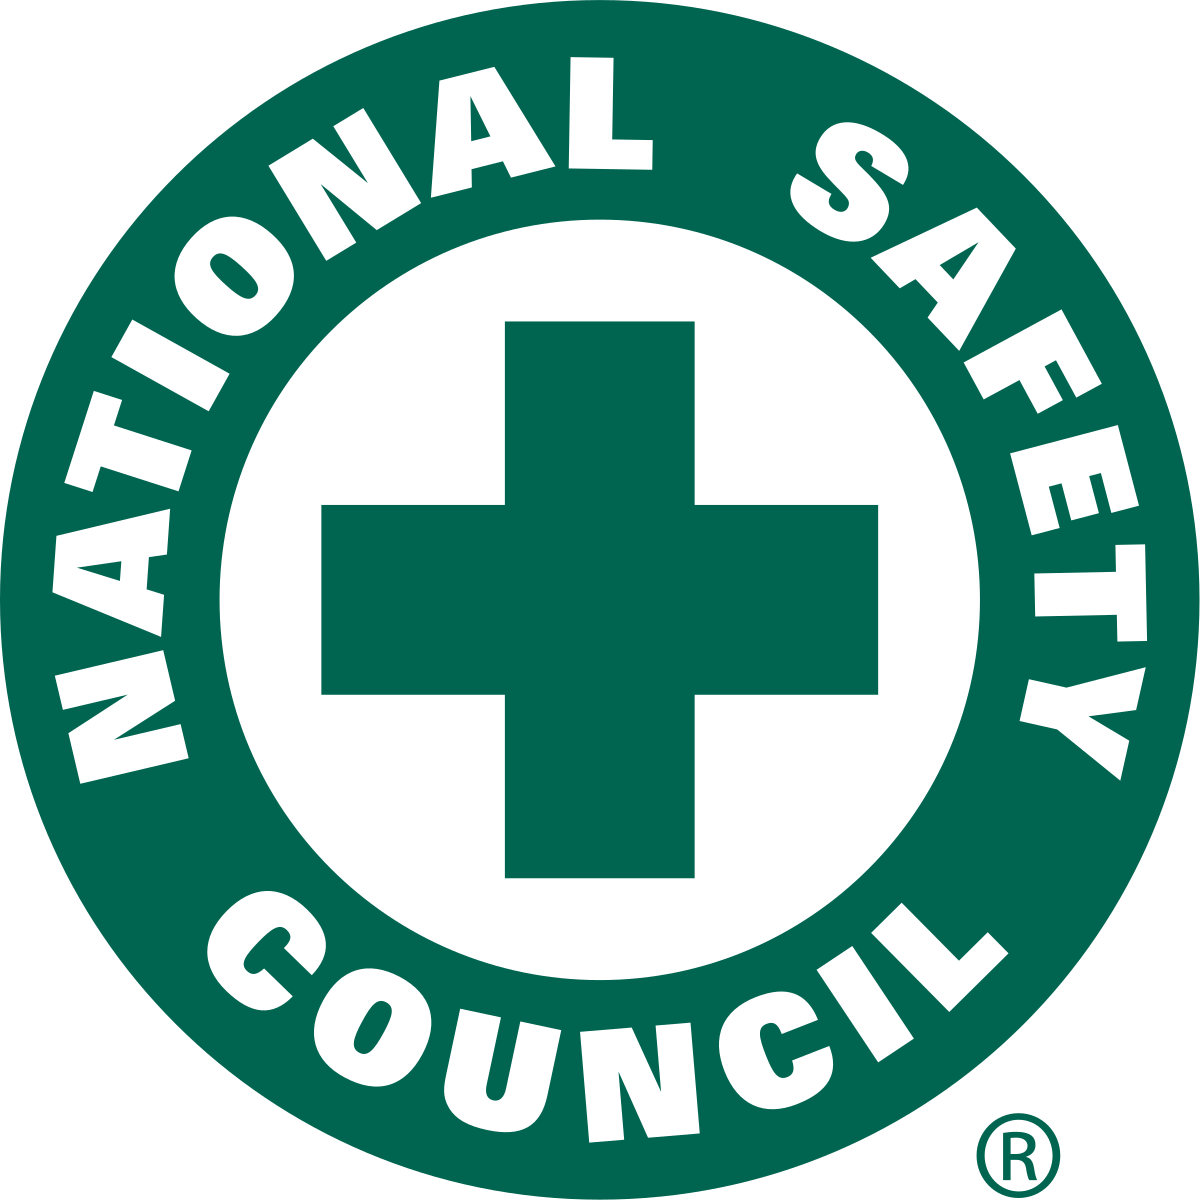 National_Safety_Council logo.png